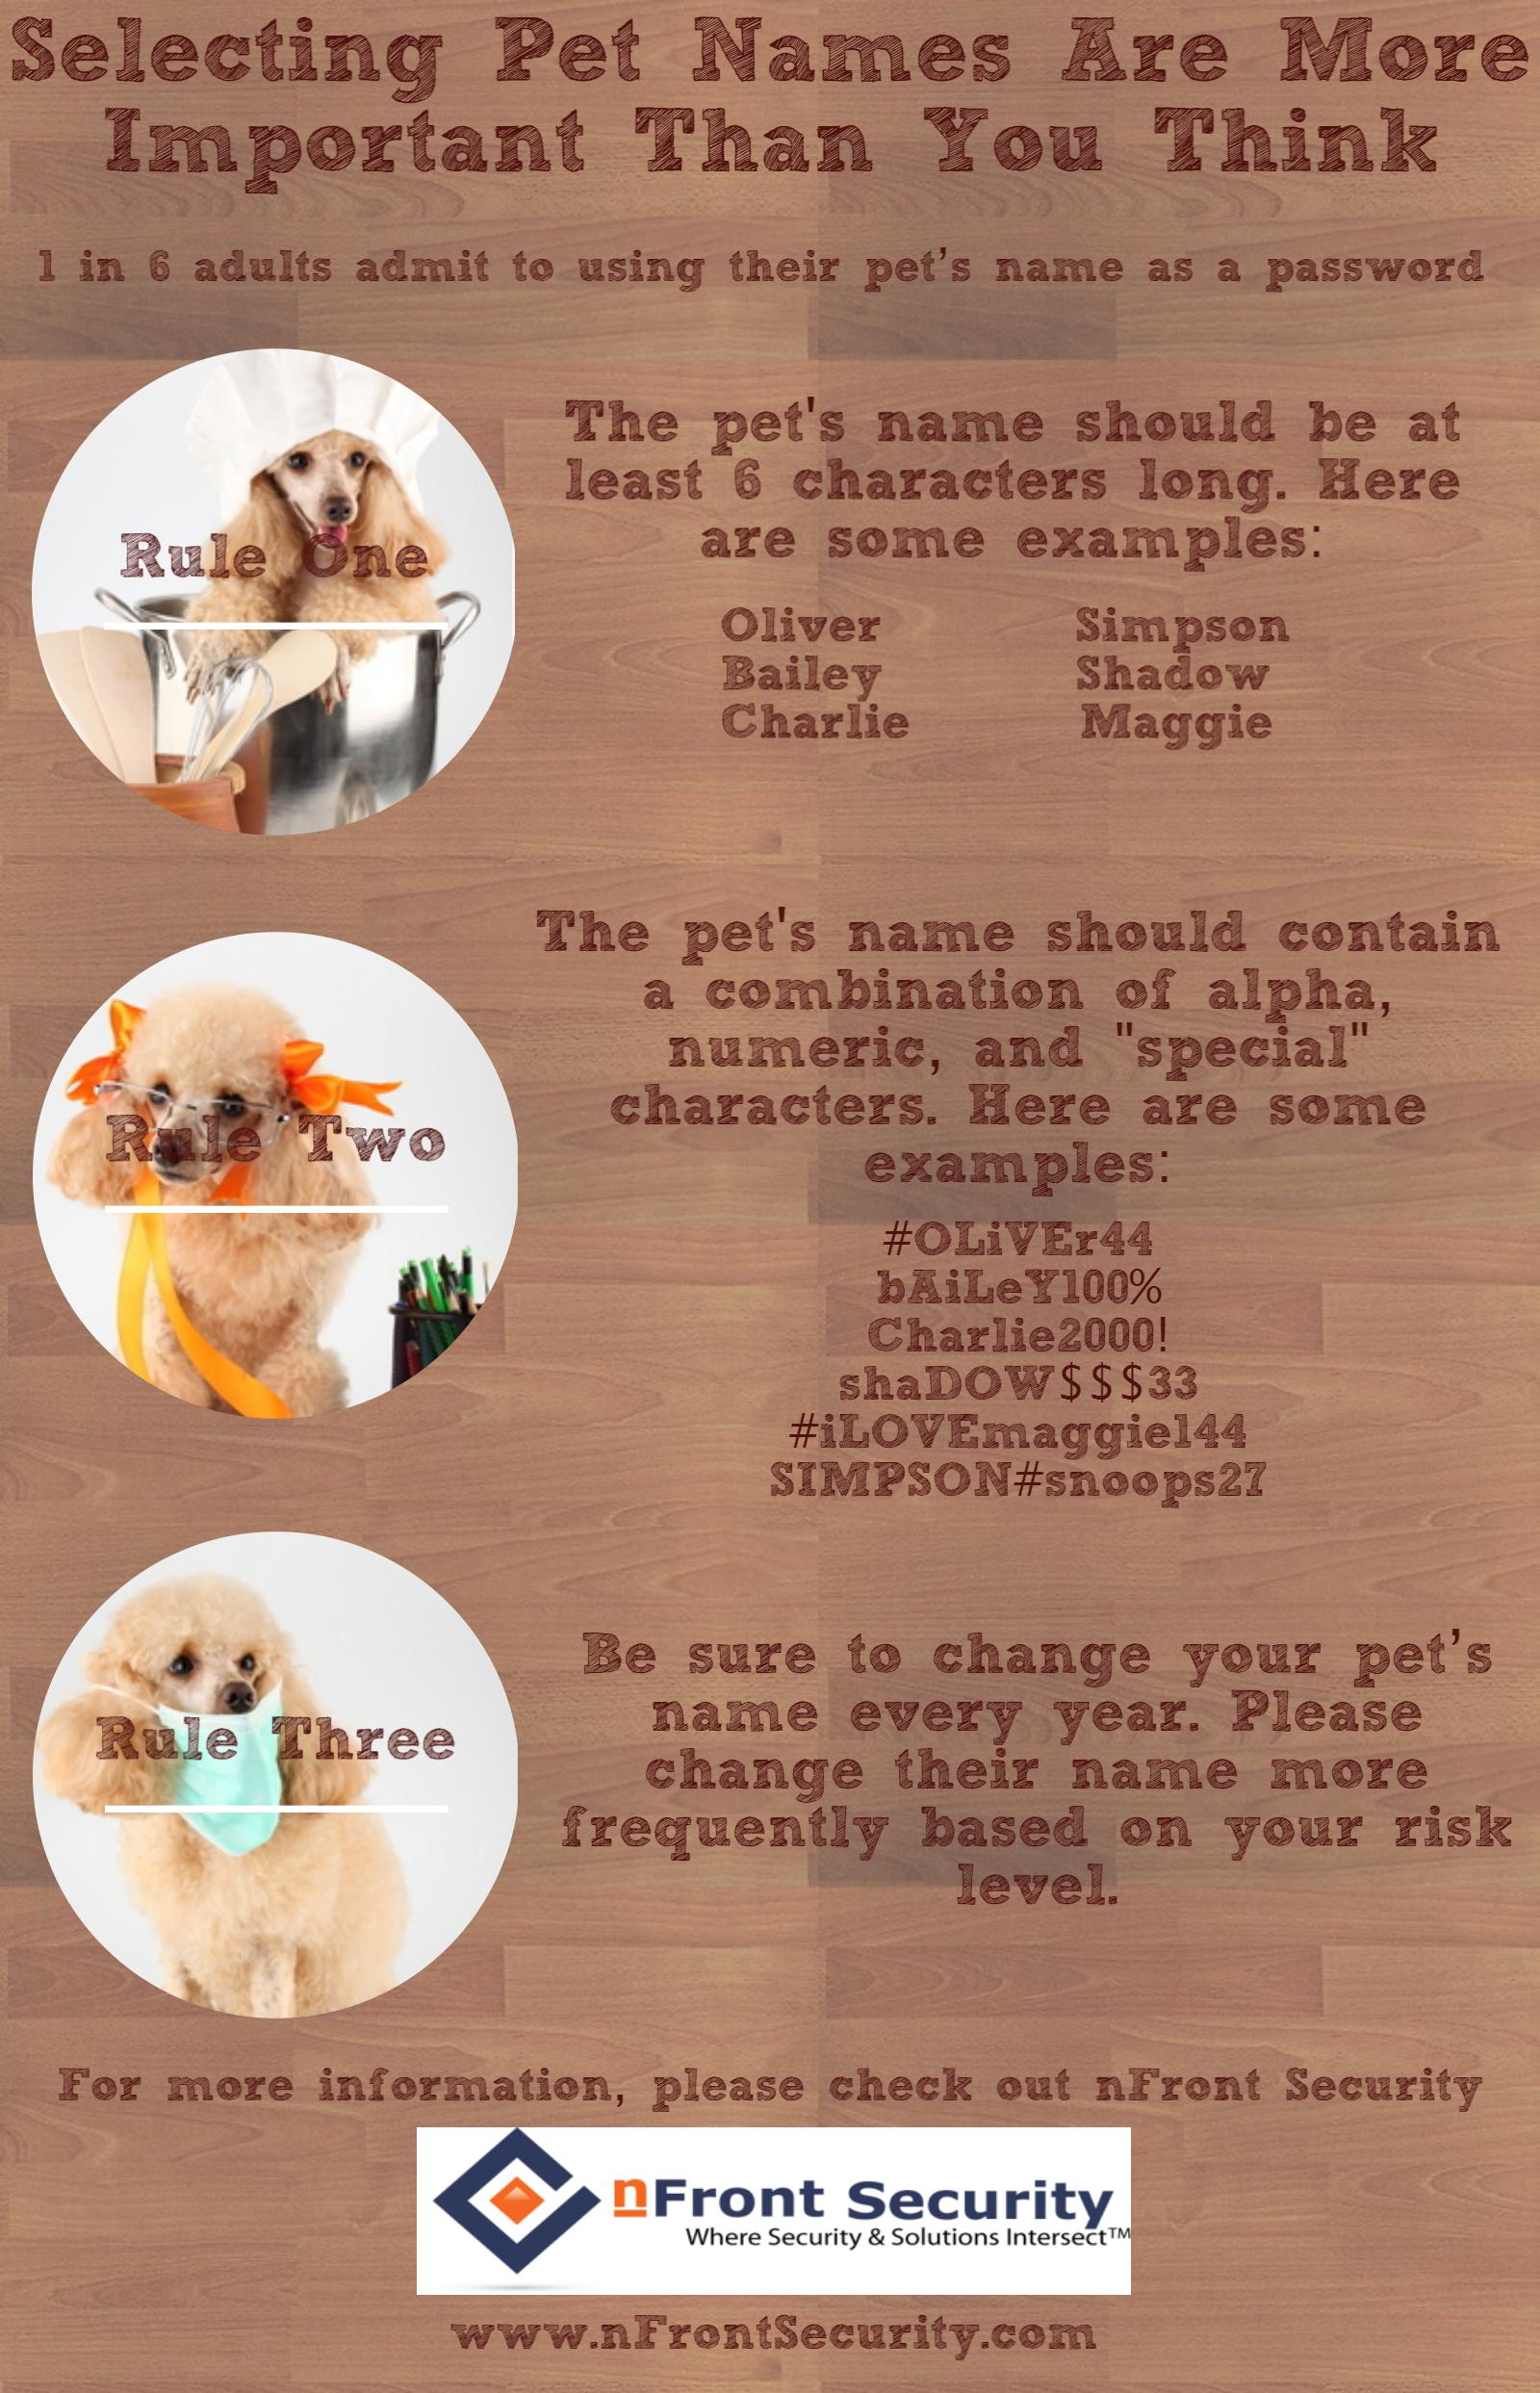 Selecting Pet Names Are More Important Than You Think